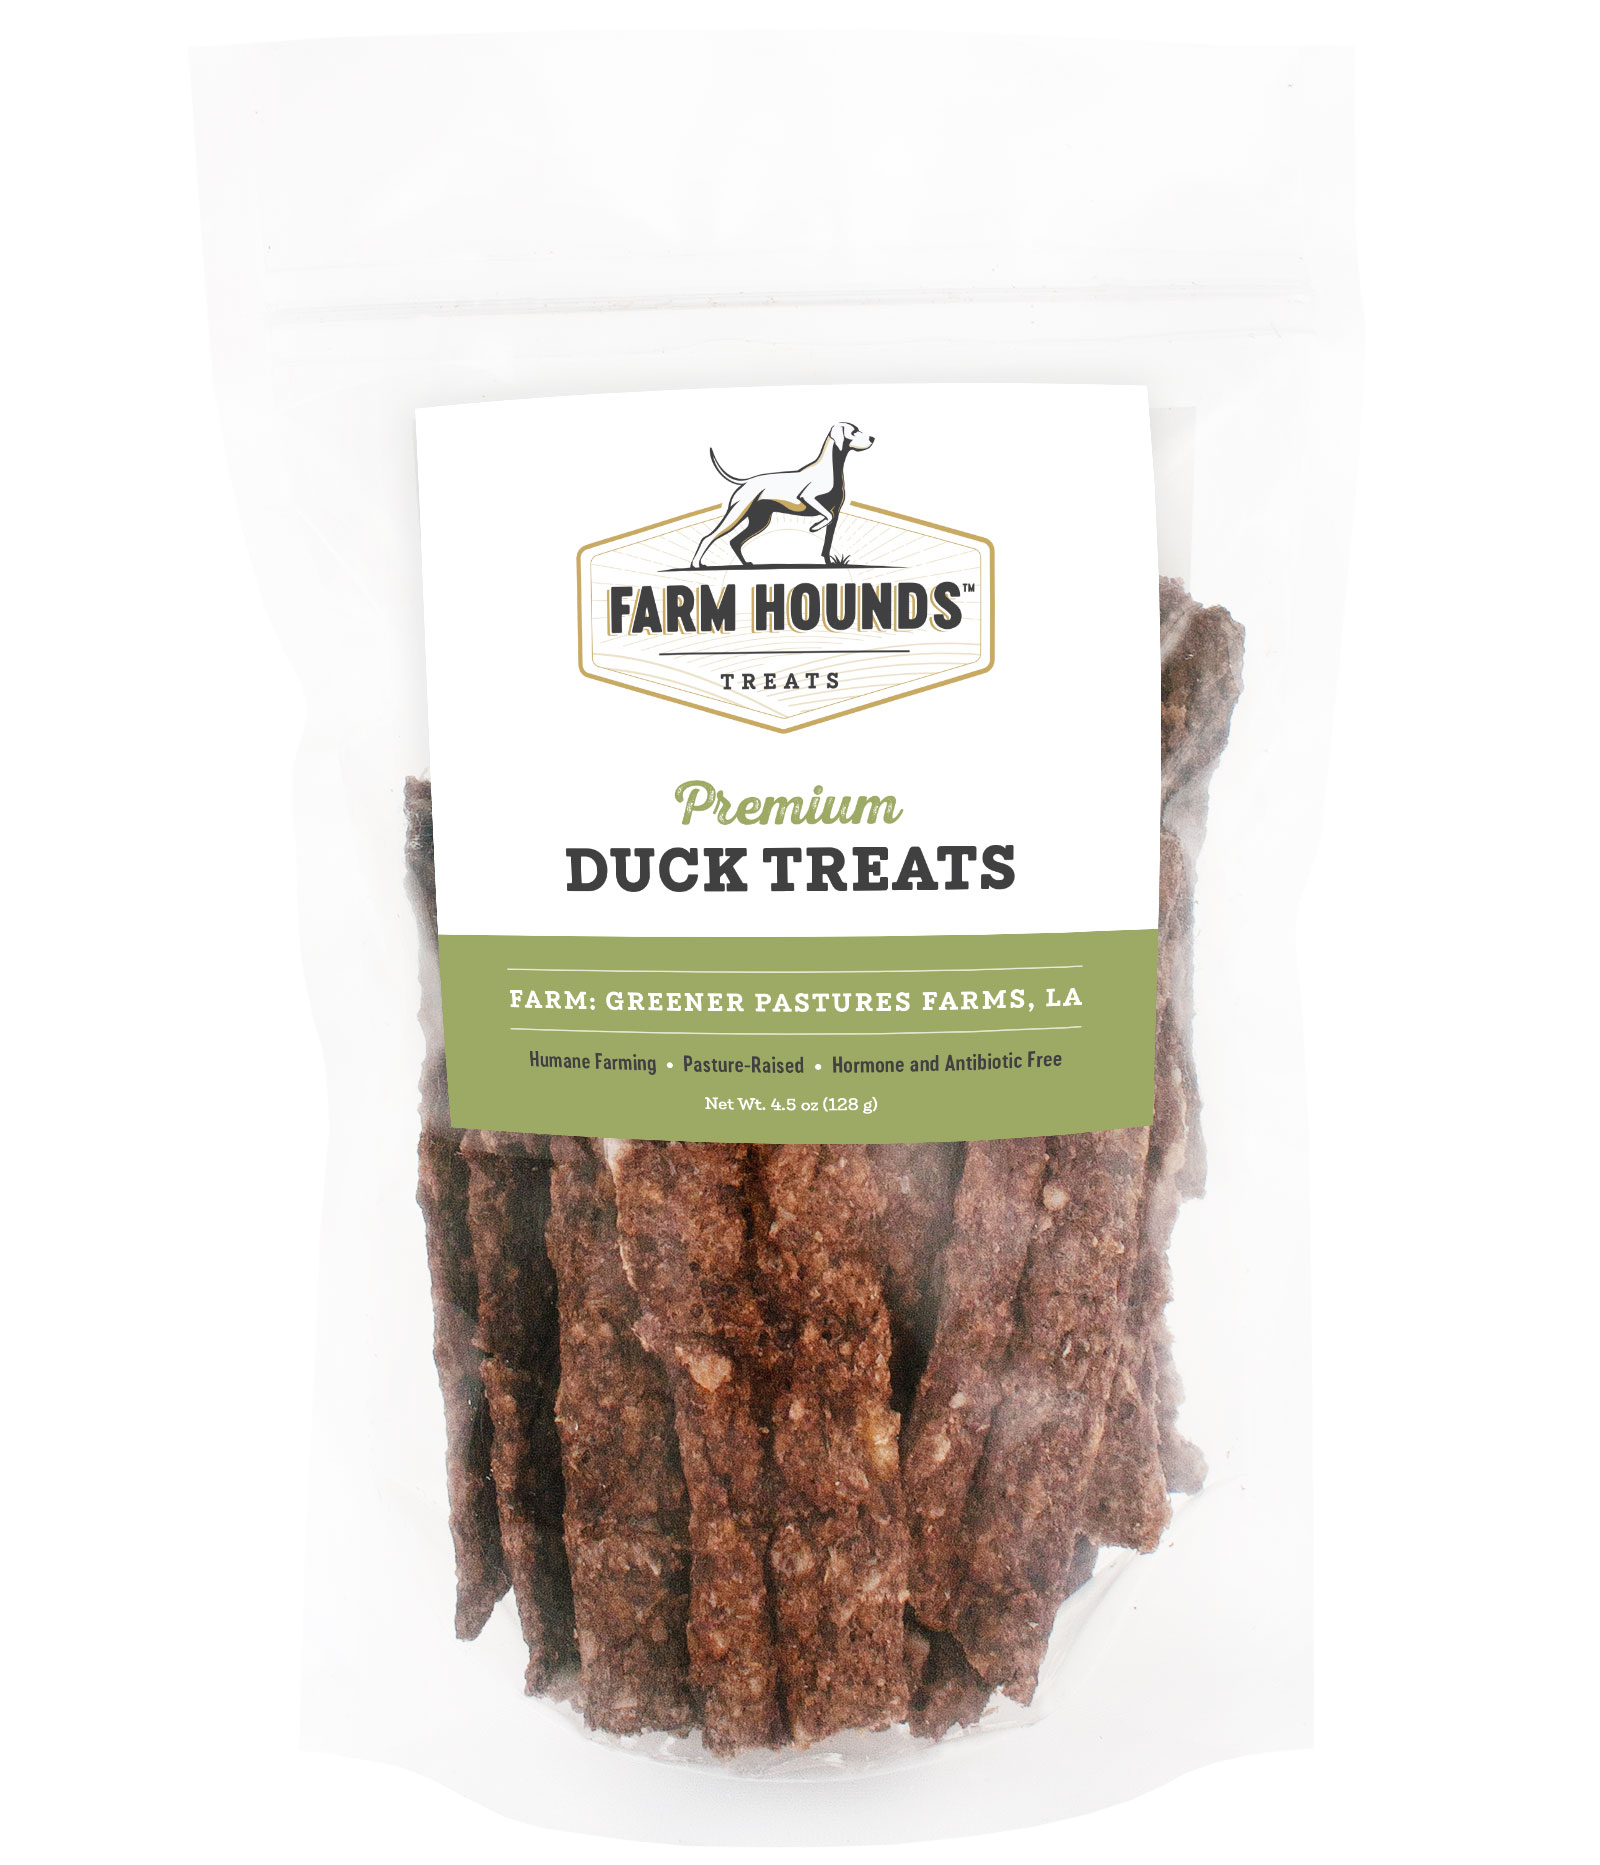 Farm Hounds Premium Duck Treats